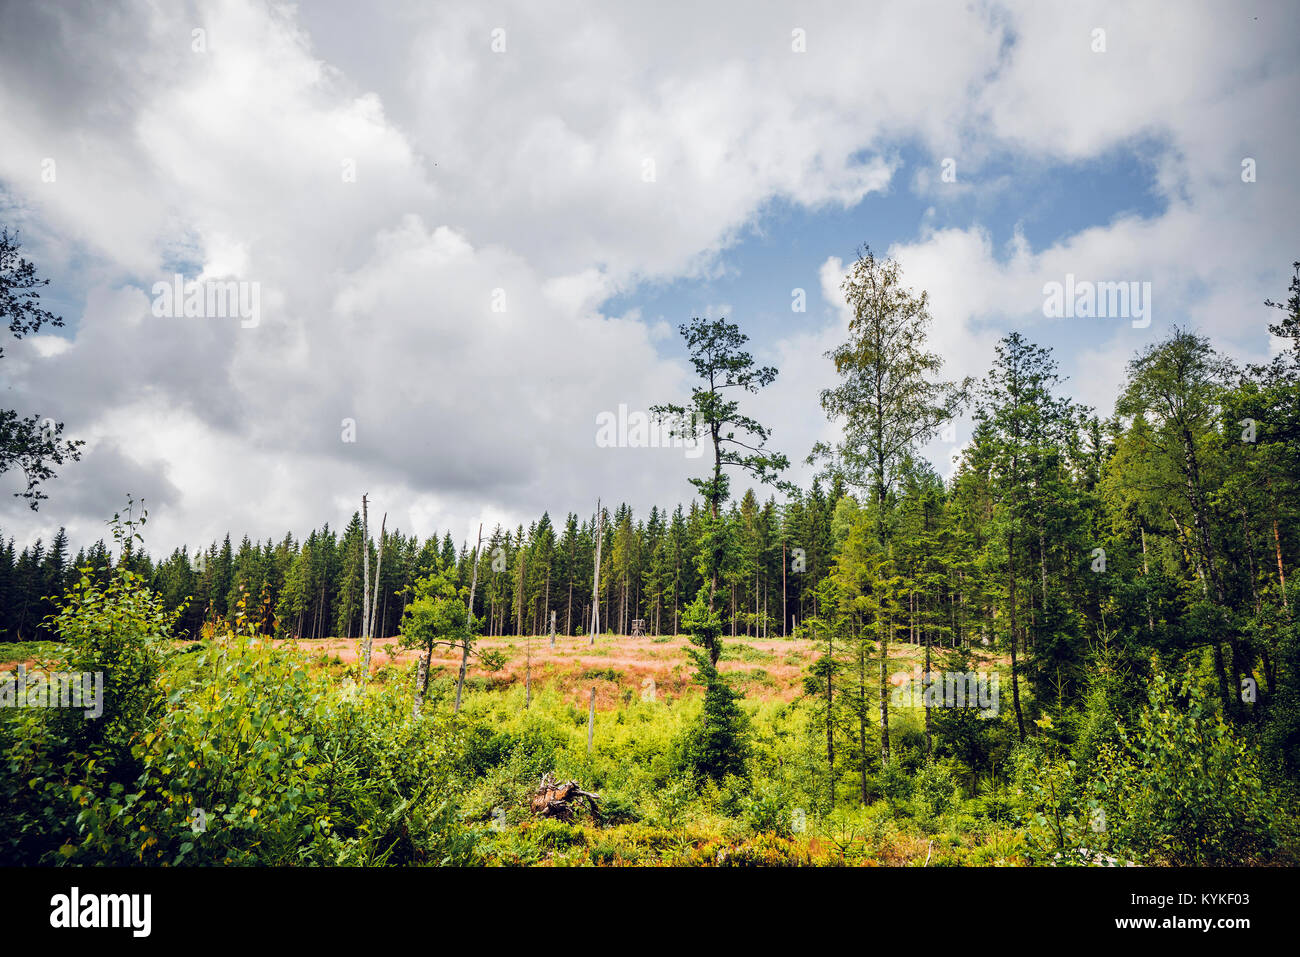 Pine trees in a forest clearing in the summer with green nature - Stock Image